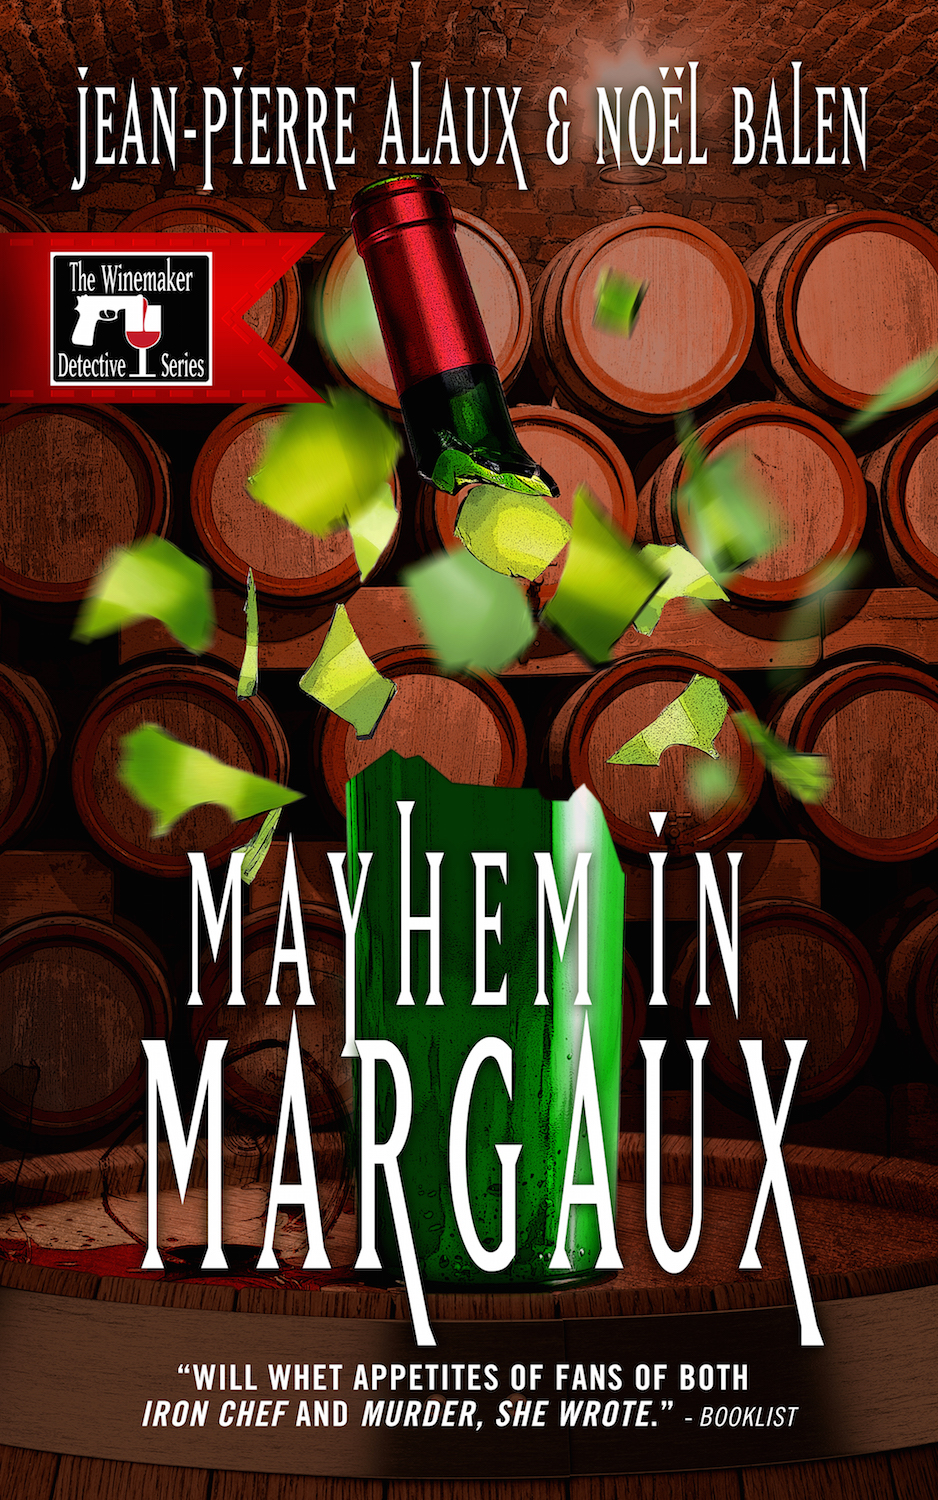 The Winemaker Detective in Margaux